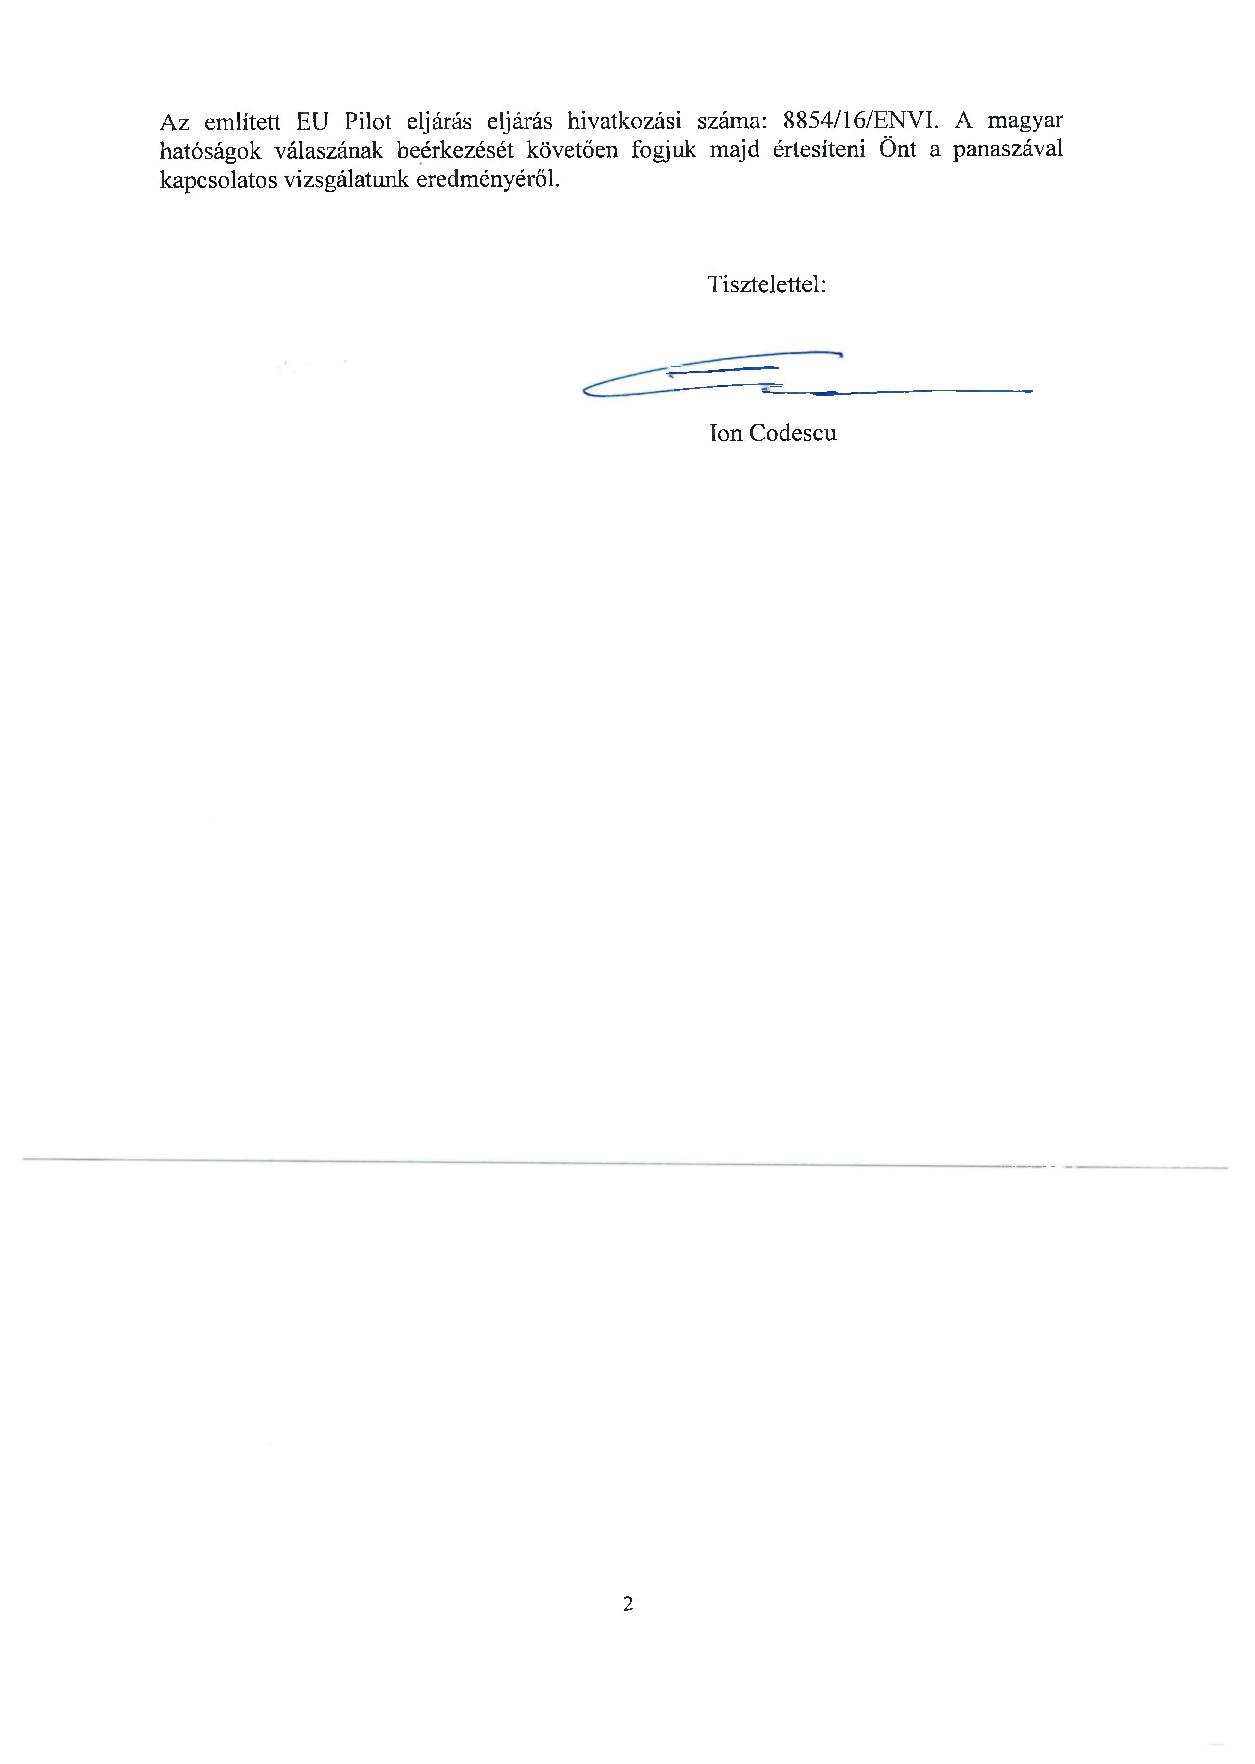 info_letter_to_compl_chap_2016-02646_transfer_to_eu_pilot-page-003.jpg